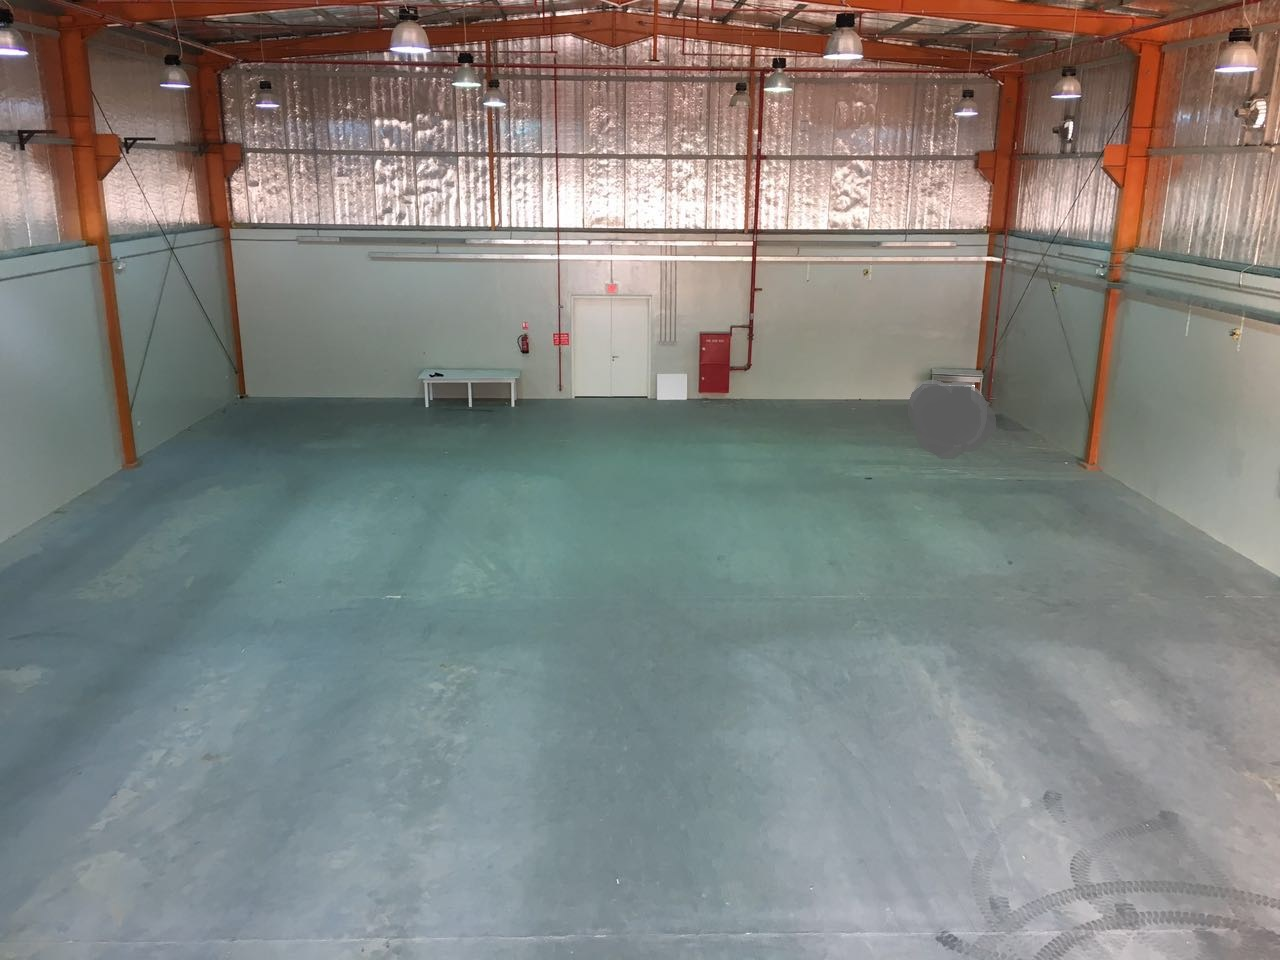 730 sq mtr,  food license store, with air conditions warehouse, including utilities.